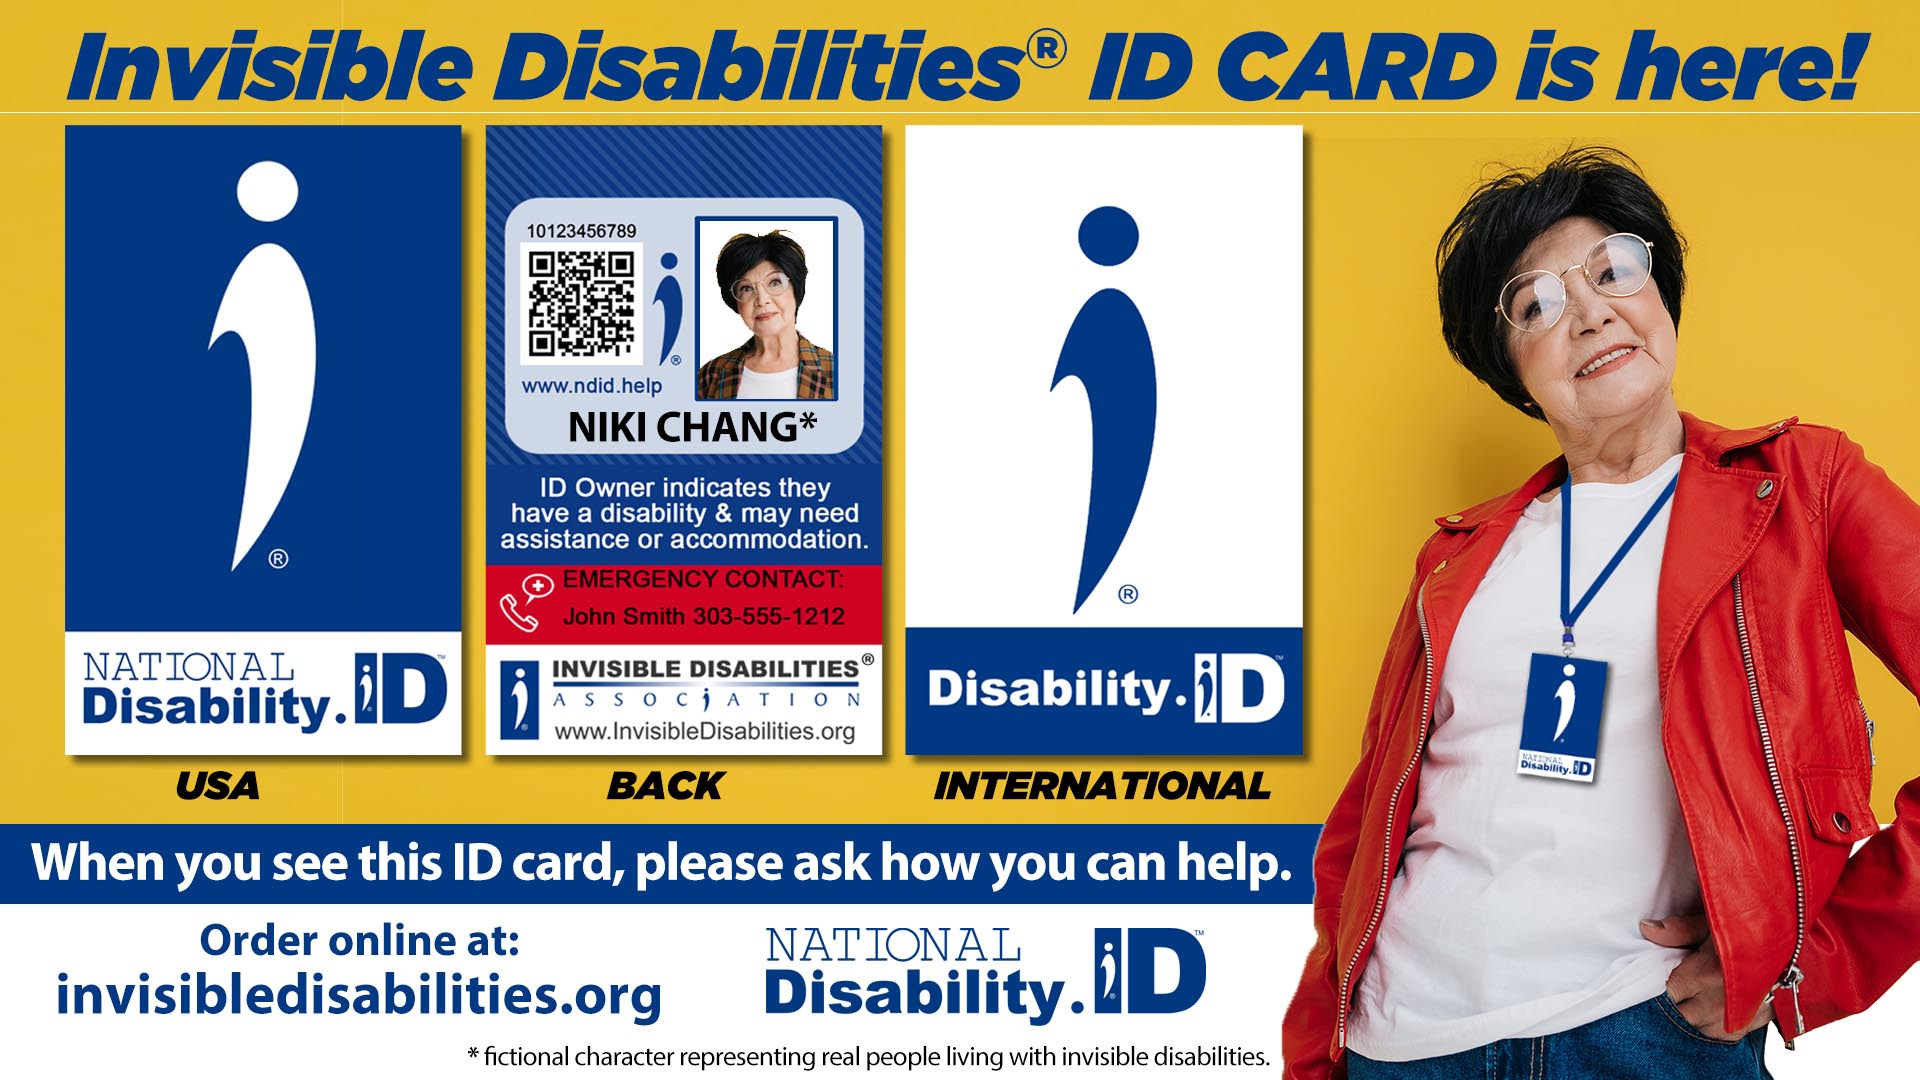 Voluntary Disability ID Card Provides Help